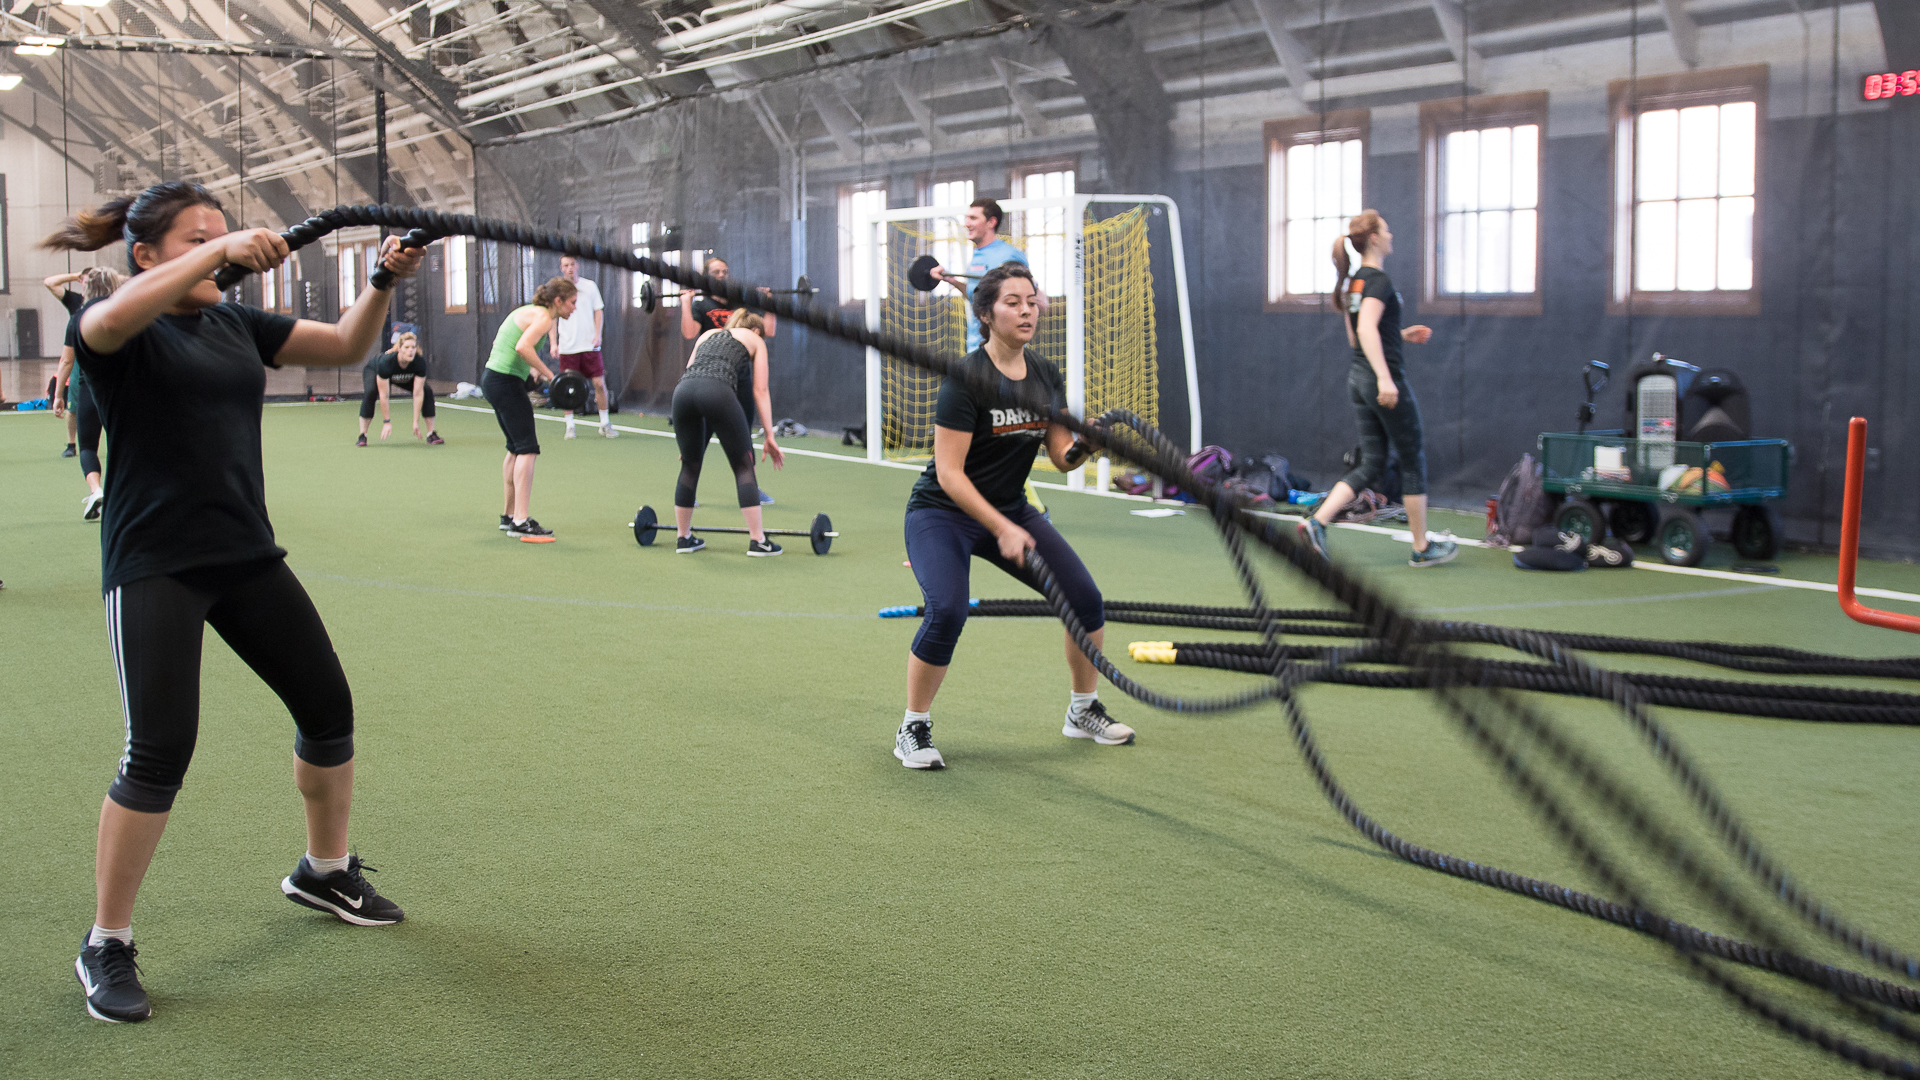 Group training recreational sports oregon state university all of our dam fit trainers must also hold a nationally recognized personal training certification in addition to completing an extensive training for dam 1betcityfo Image collections